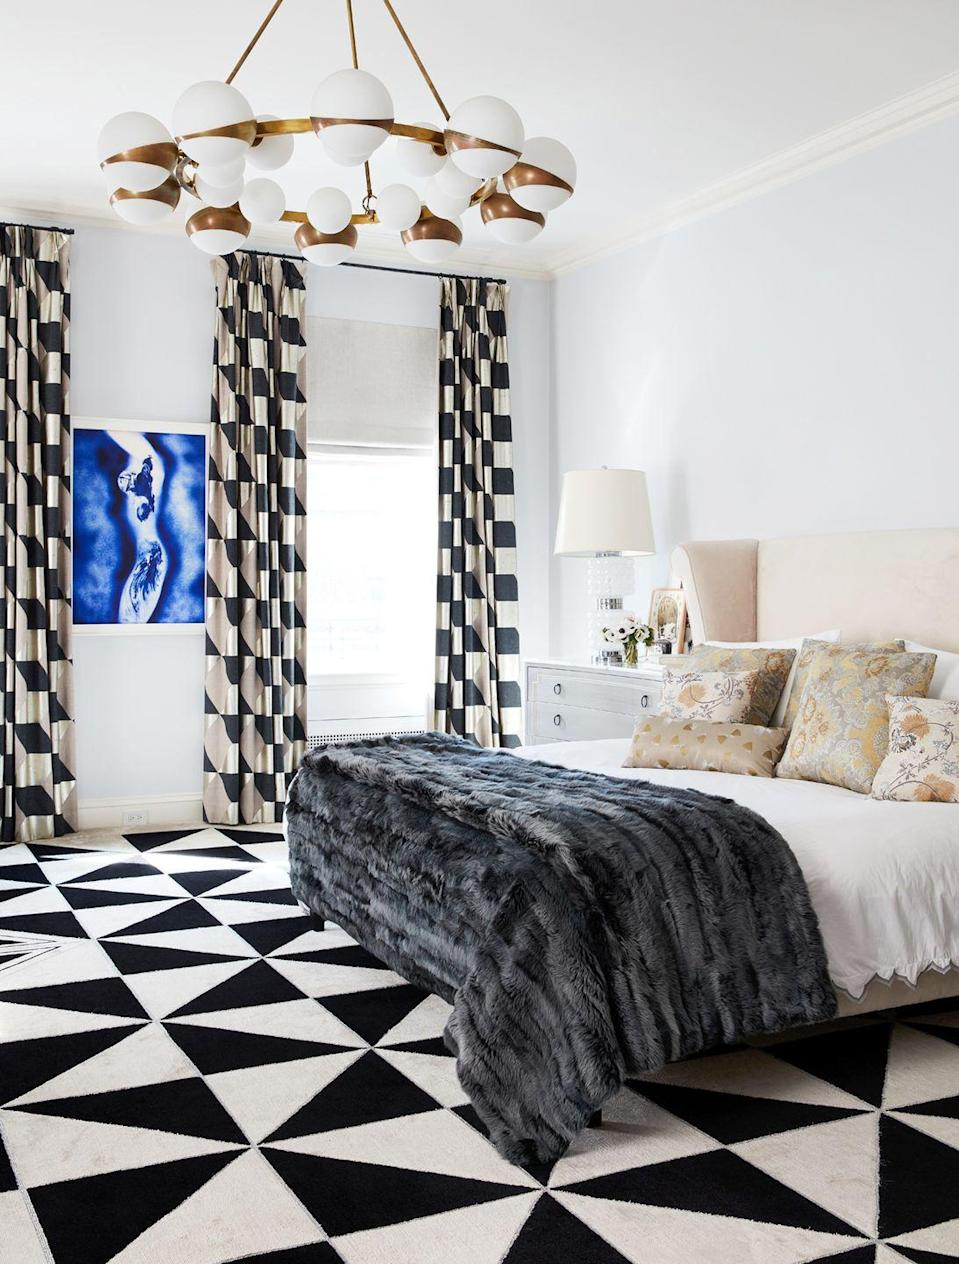 "<p>Bold, over-the-top black and white carpeting and drapes blend nicely with the glam light fixture, eye-catching artwork, and luxe throw blanket while the delicate pinks and creams on the bed soften up this bedroom by <a href=""https://www.fawngalli.com/"" rel=""nofollow noopener"" target=""_blank"" data-ylk=""slk:Fawn Galli"" class=""link rapid-noclick-resp"">Fawn Galli</a>. </p>"